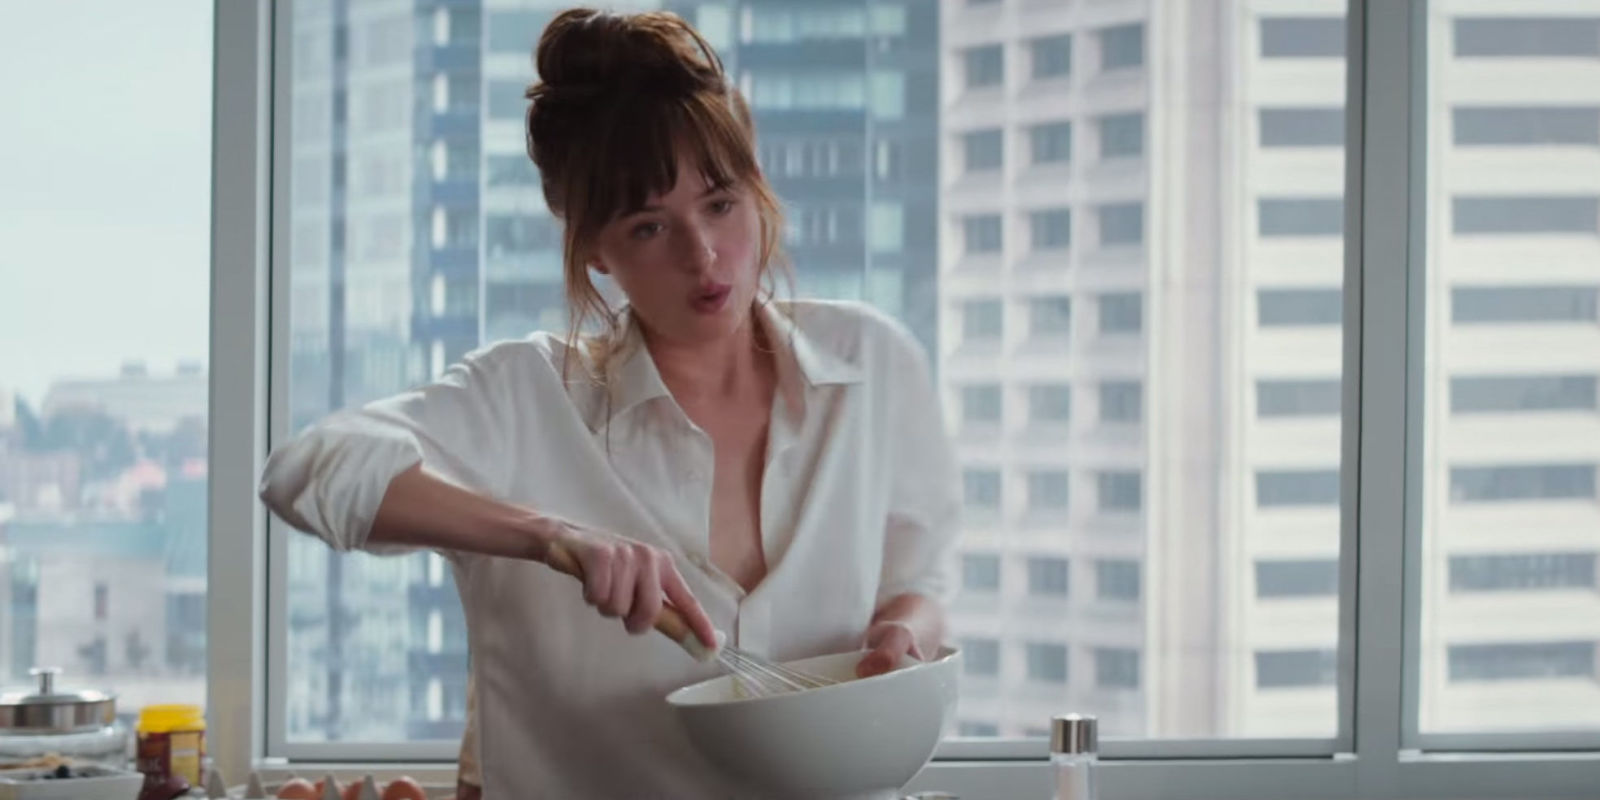 Watch Christian Catch Ana Cooking in the Latest Fifty